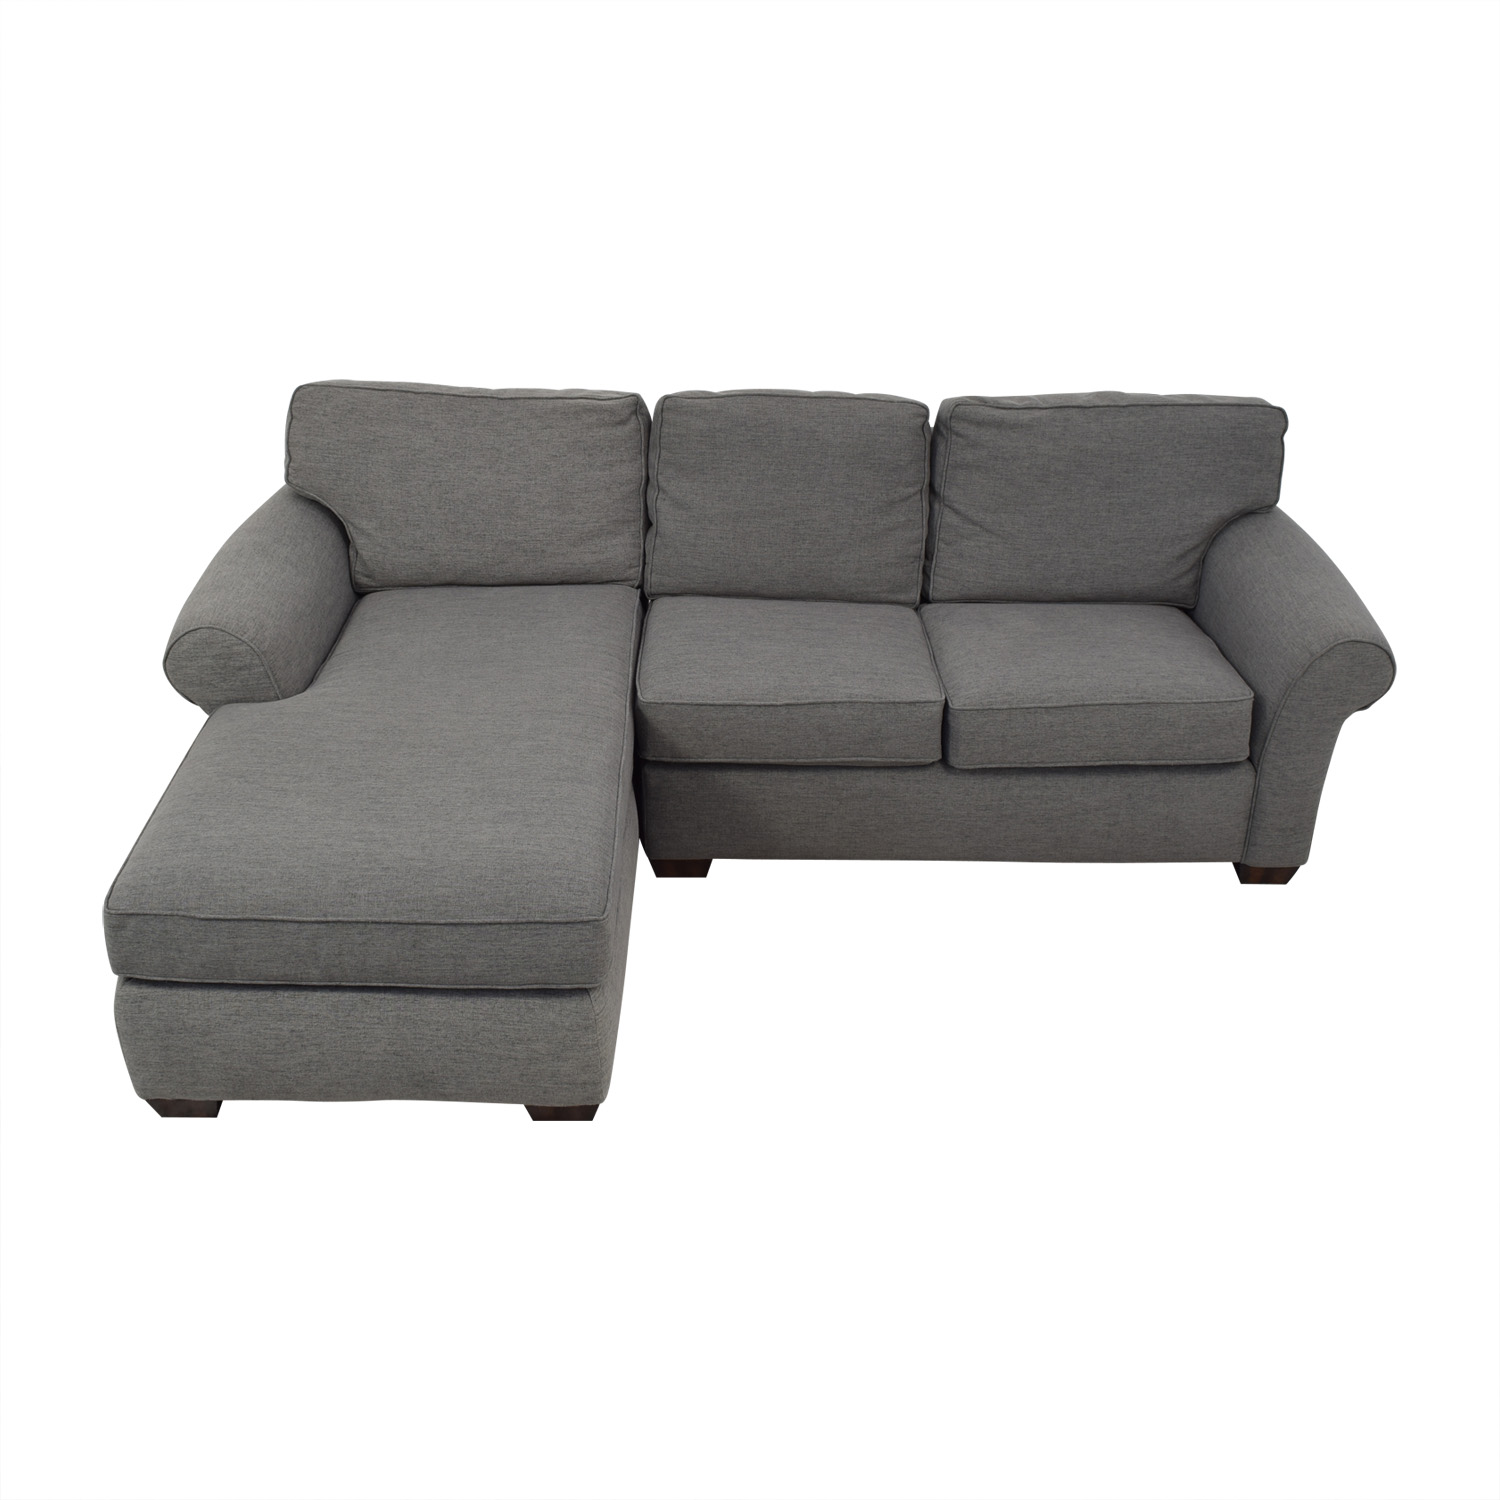 Flexsteel Flexsteel Grey Sectional Sofa with Chaise on sale